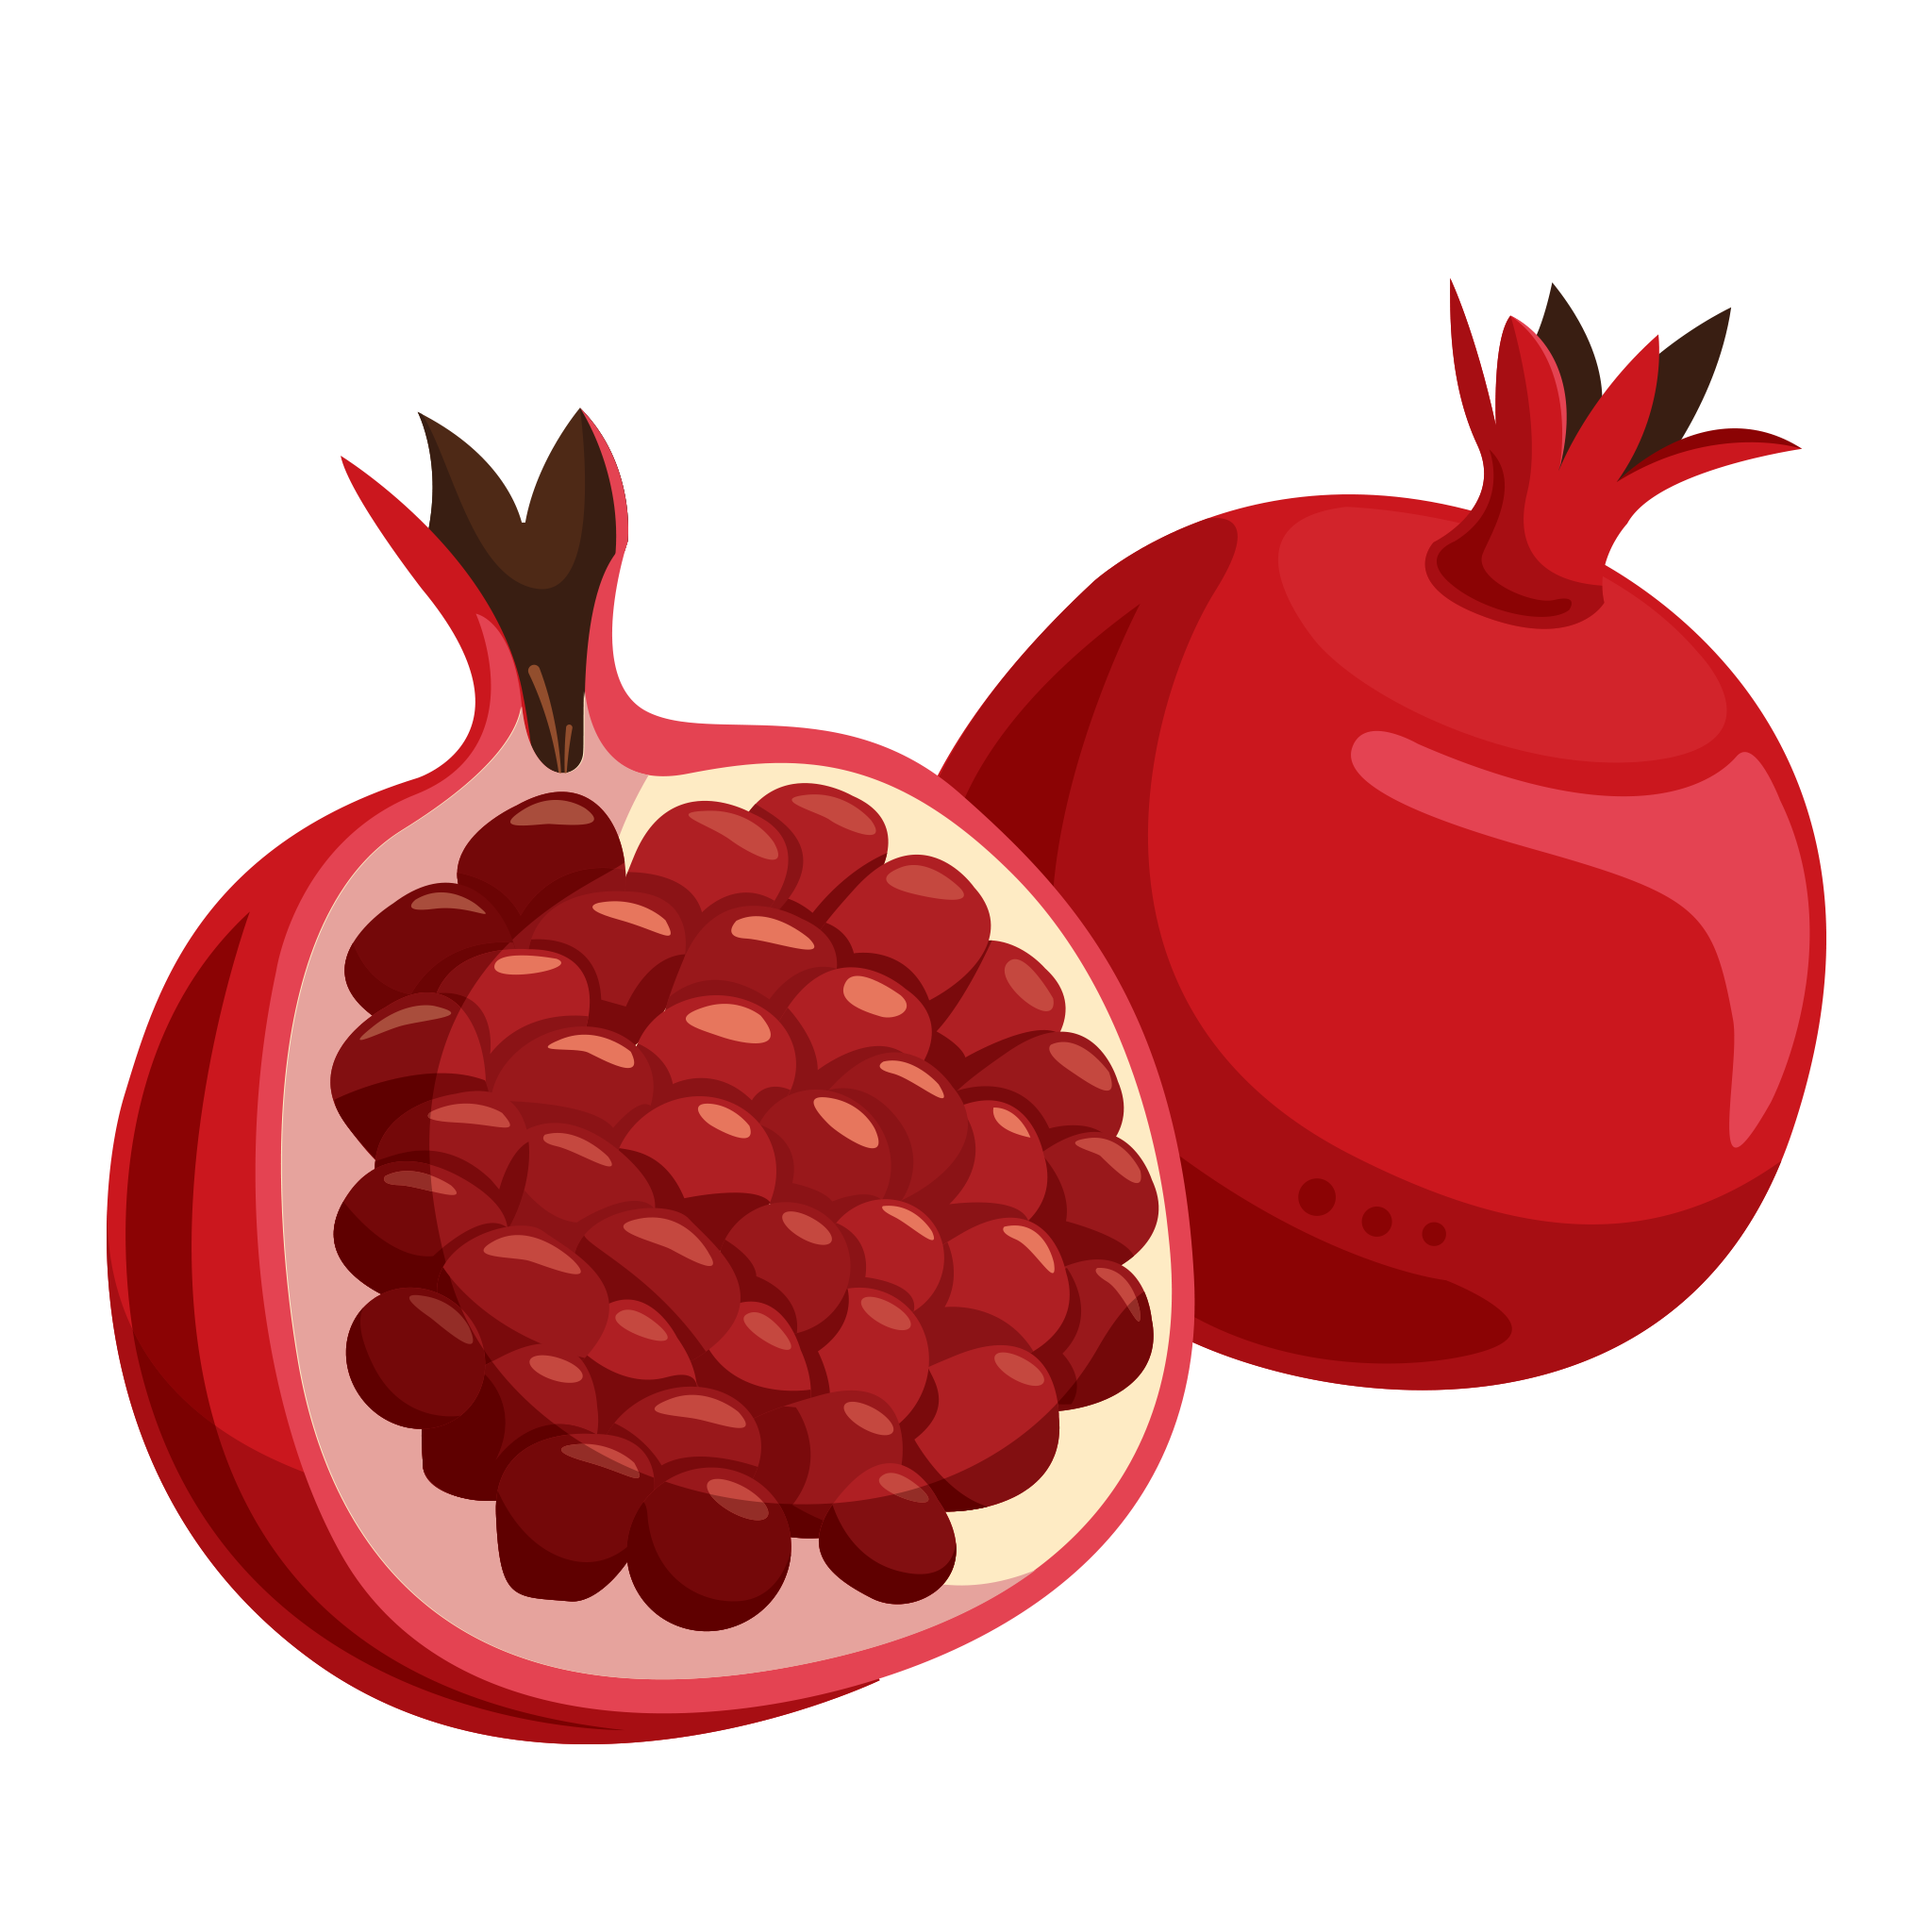 Small pomegranate. Png images free download